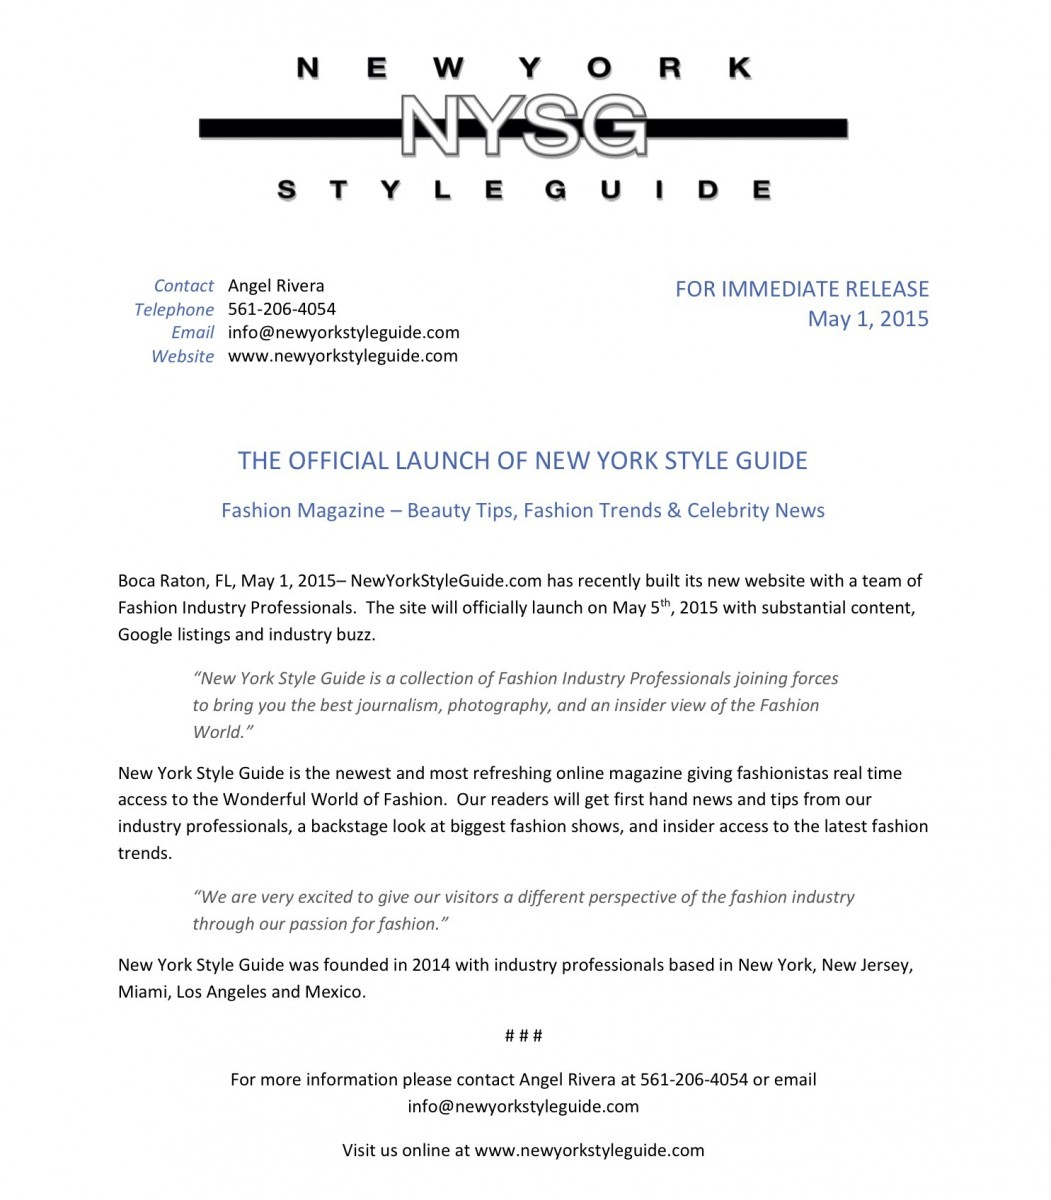 New York Style Guide Official Launch - Press Release